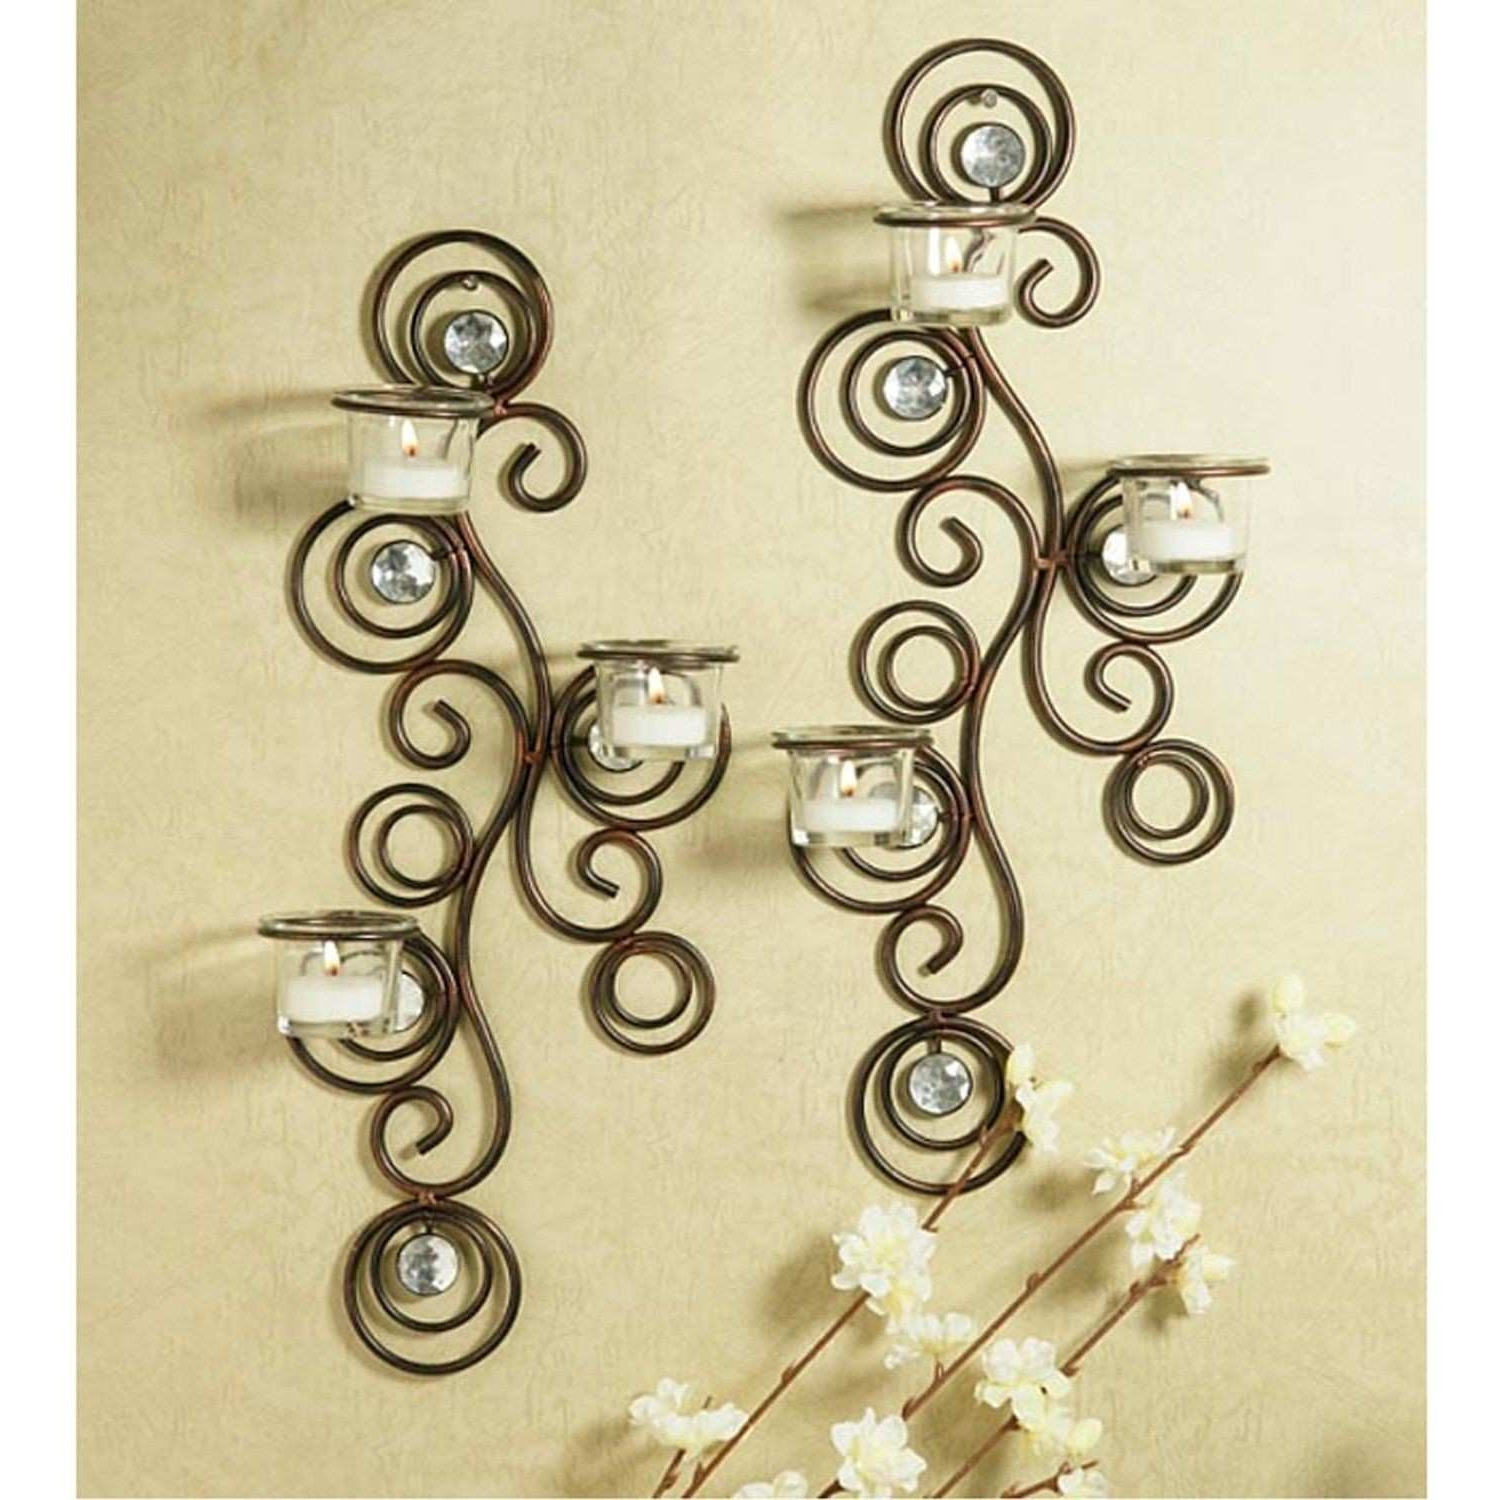 Awesome Oil Rubbed Bronze Wall Decor (View 3 of 20)